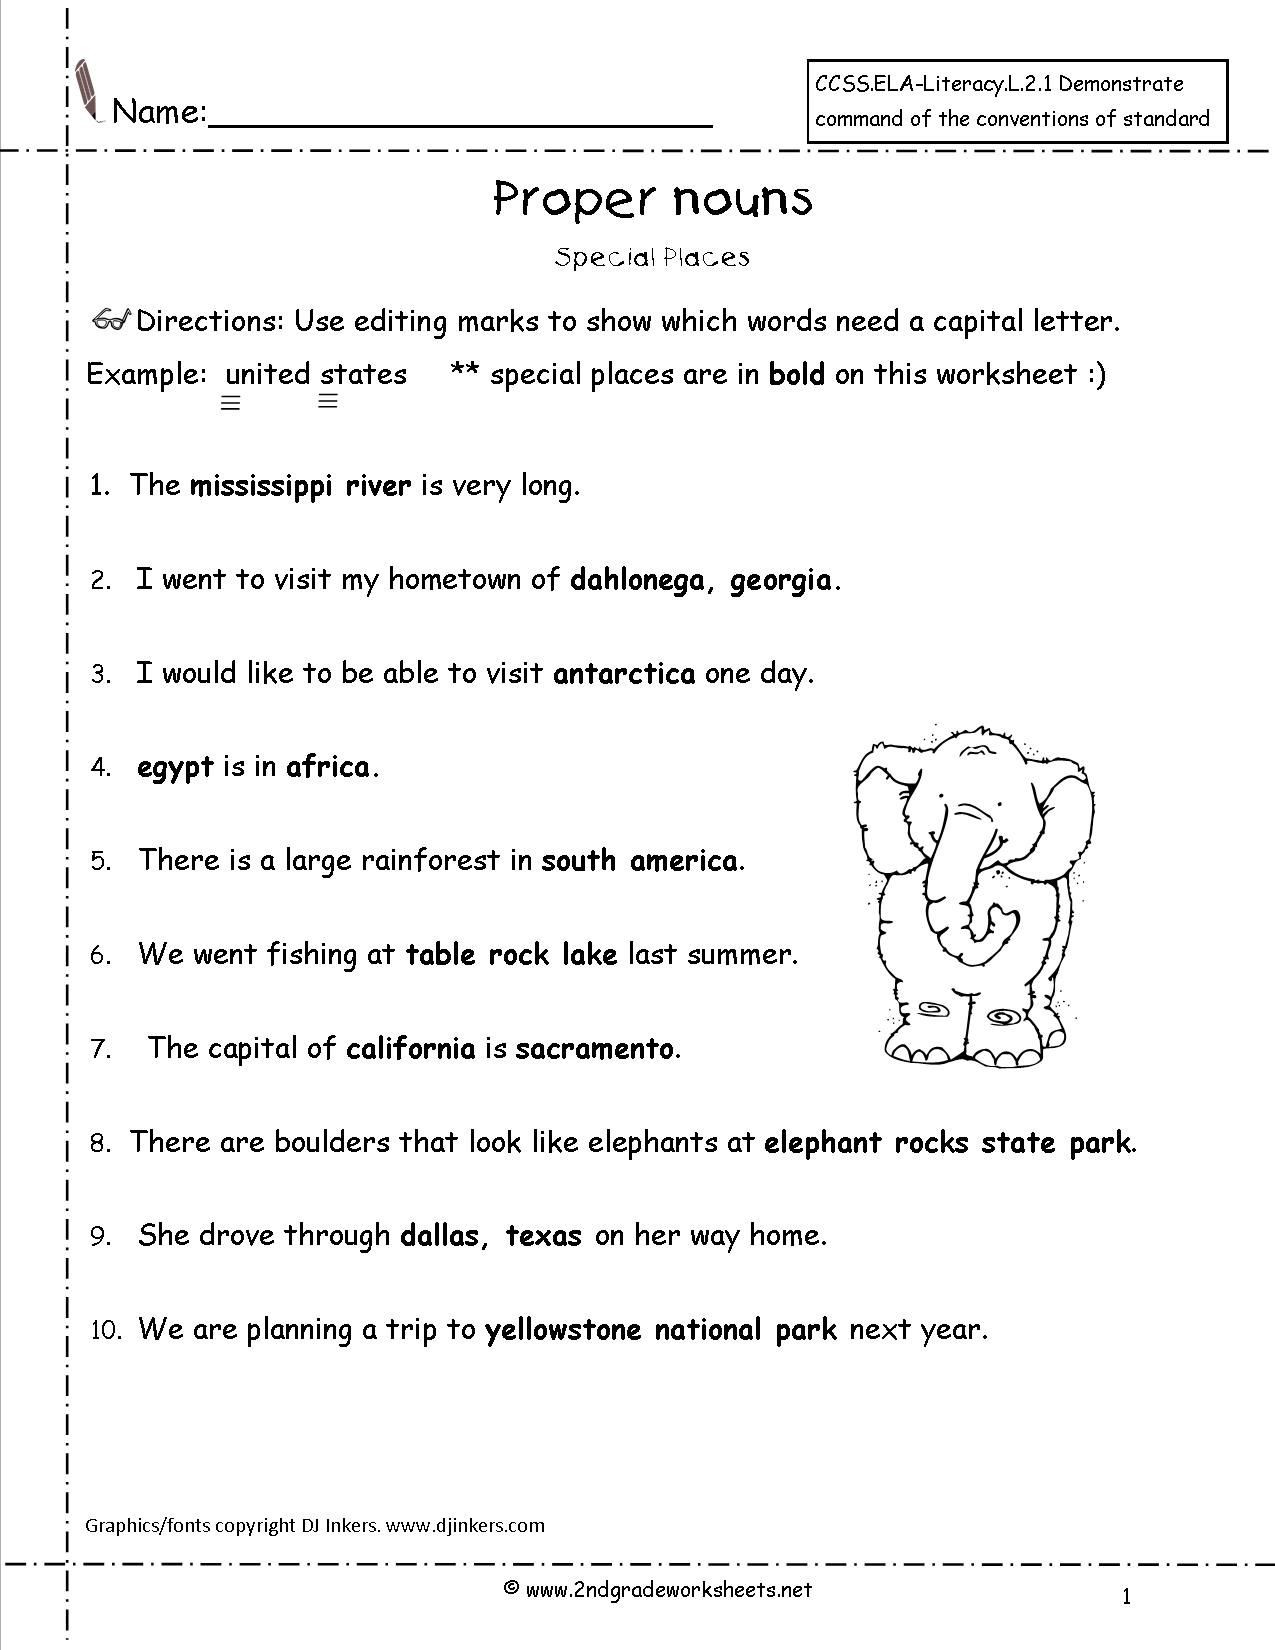 2nd Grade Proper Nouns Worksheet Proper Nouns Worksheet